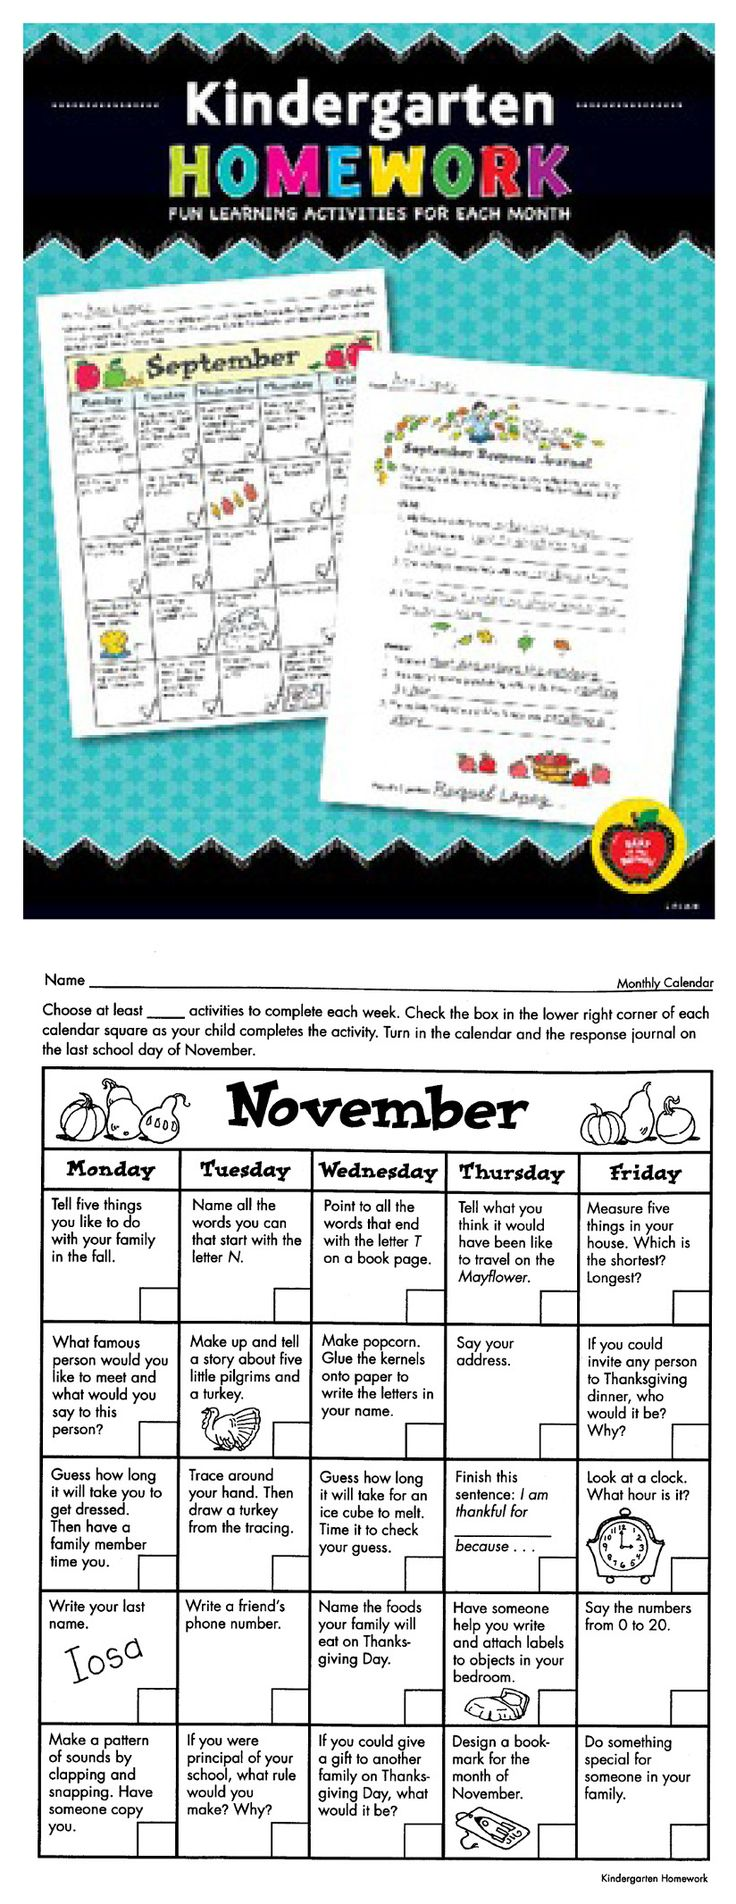 Send home fun homework activities that students and families will love! Kindergarten Homework provides an entire year of activity ideas that: • Support your classroom teaching • Increase parent and family involvement • Strengthen the home-school connection • Create an enthusiasm for learning  This resource comes with 12 monthly calendars that include five quick learning activities per week and a blank customizable calendar to meet the needs of individual students.